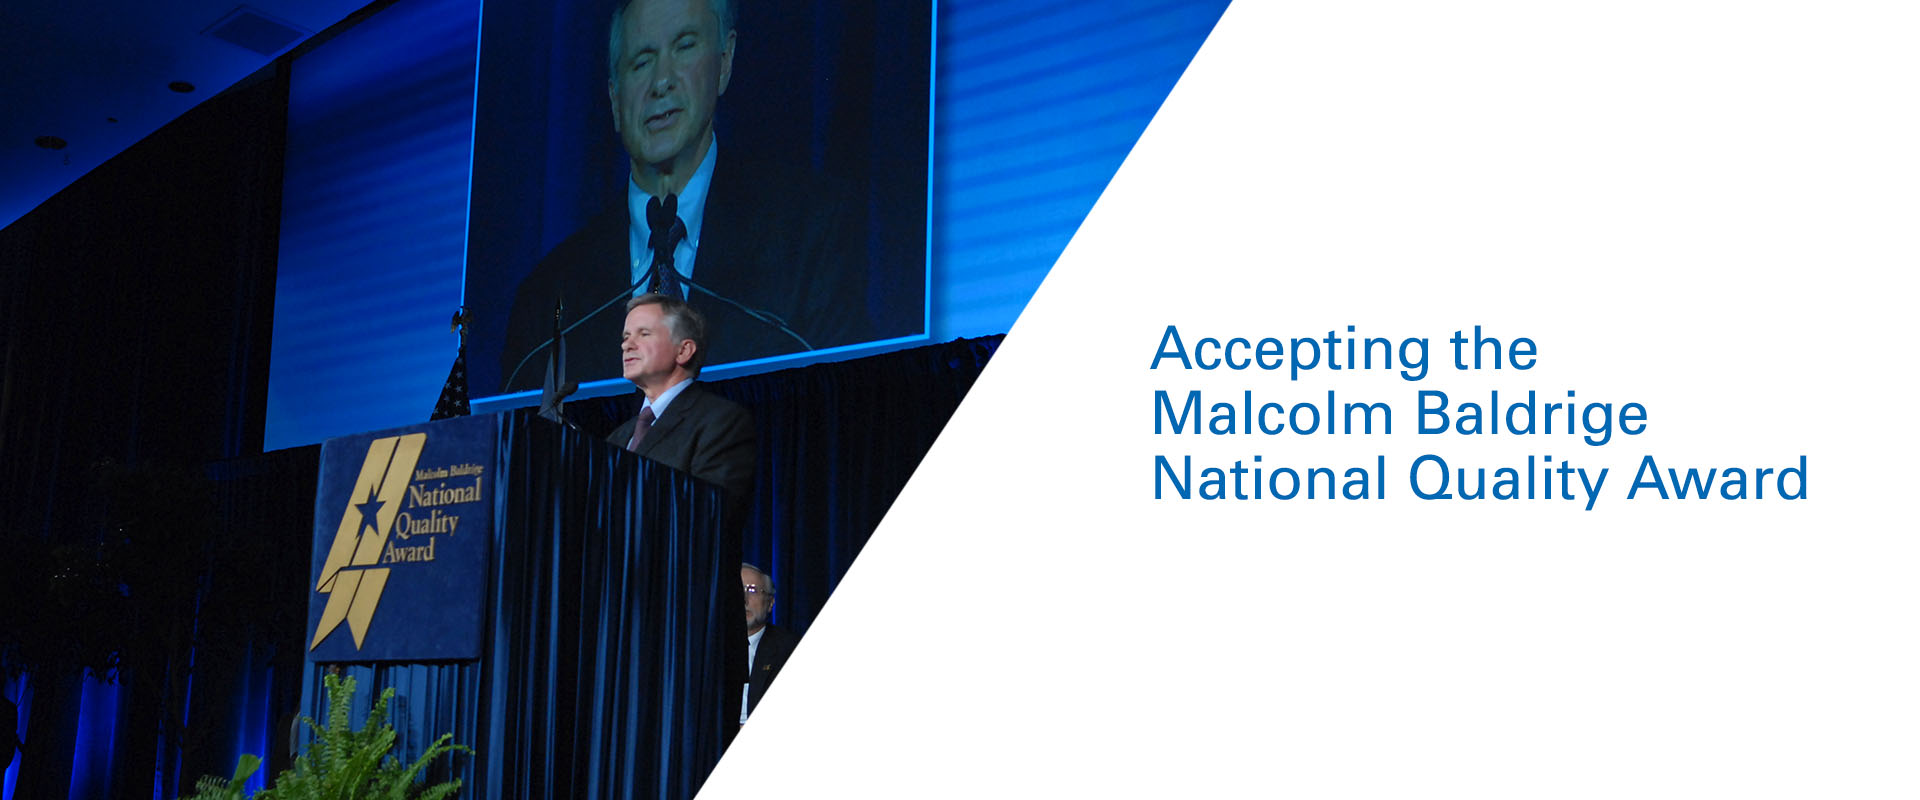 Accepting the Malcolm Baldrige National Quality Award